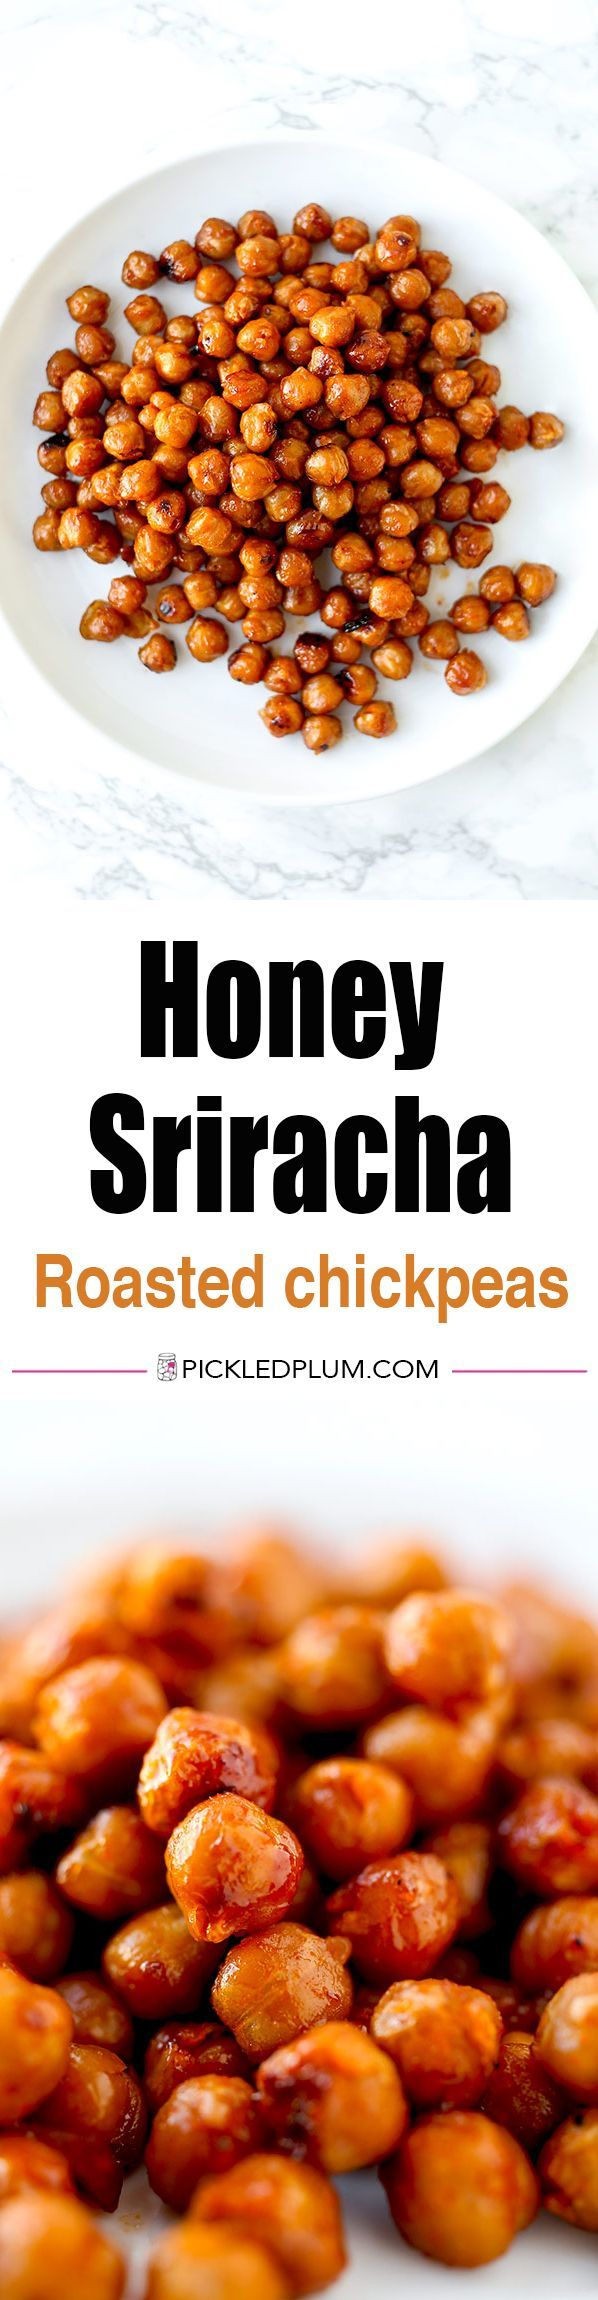 Honey Sriracha Roasted Chickpeas - These spicy sweet roasted chickpeas are the perfect mid afternoon pick me up or healthy low fat snack! healthy snack recipes, healthy snacks easy, snack ideas, vegetarian snack recipes | pickledplum.com